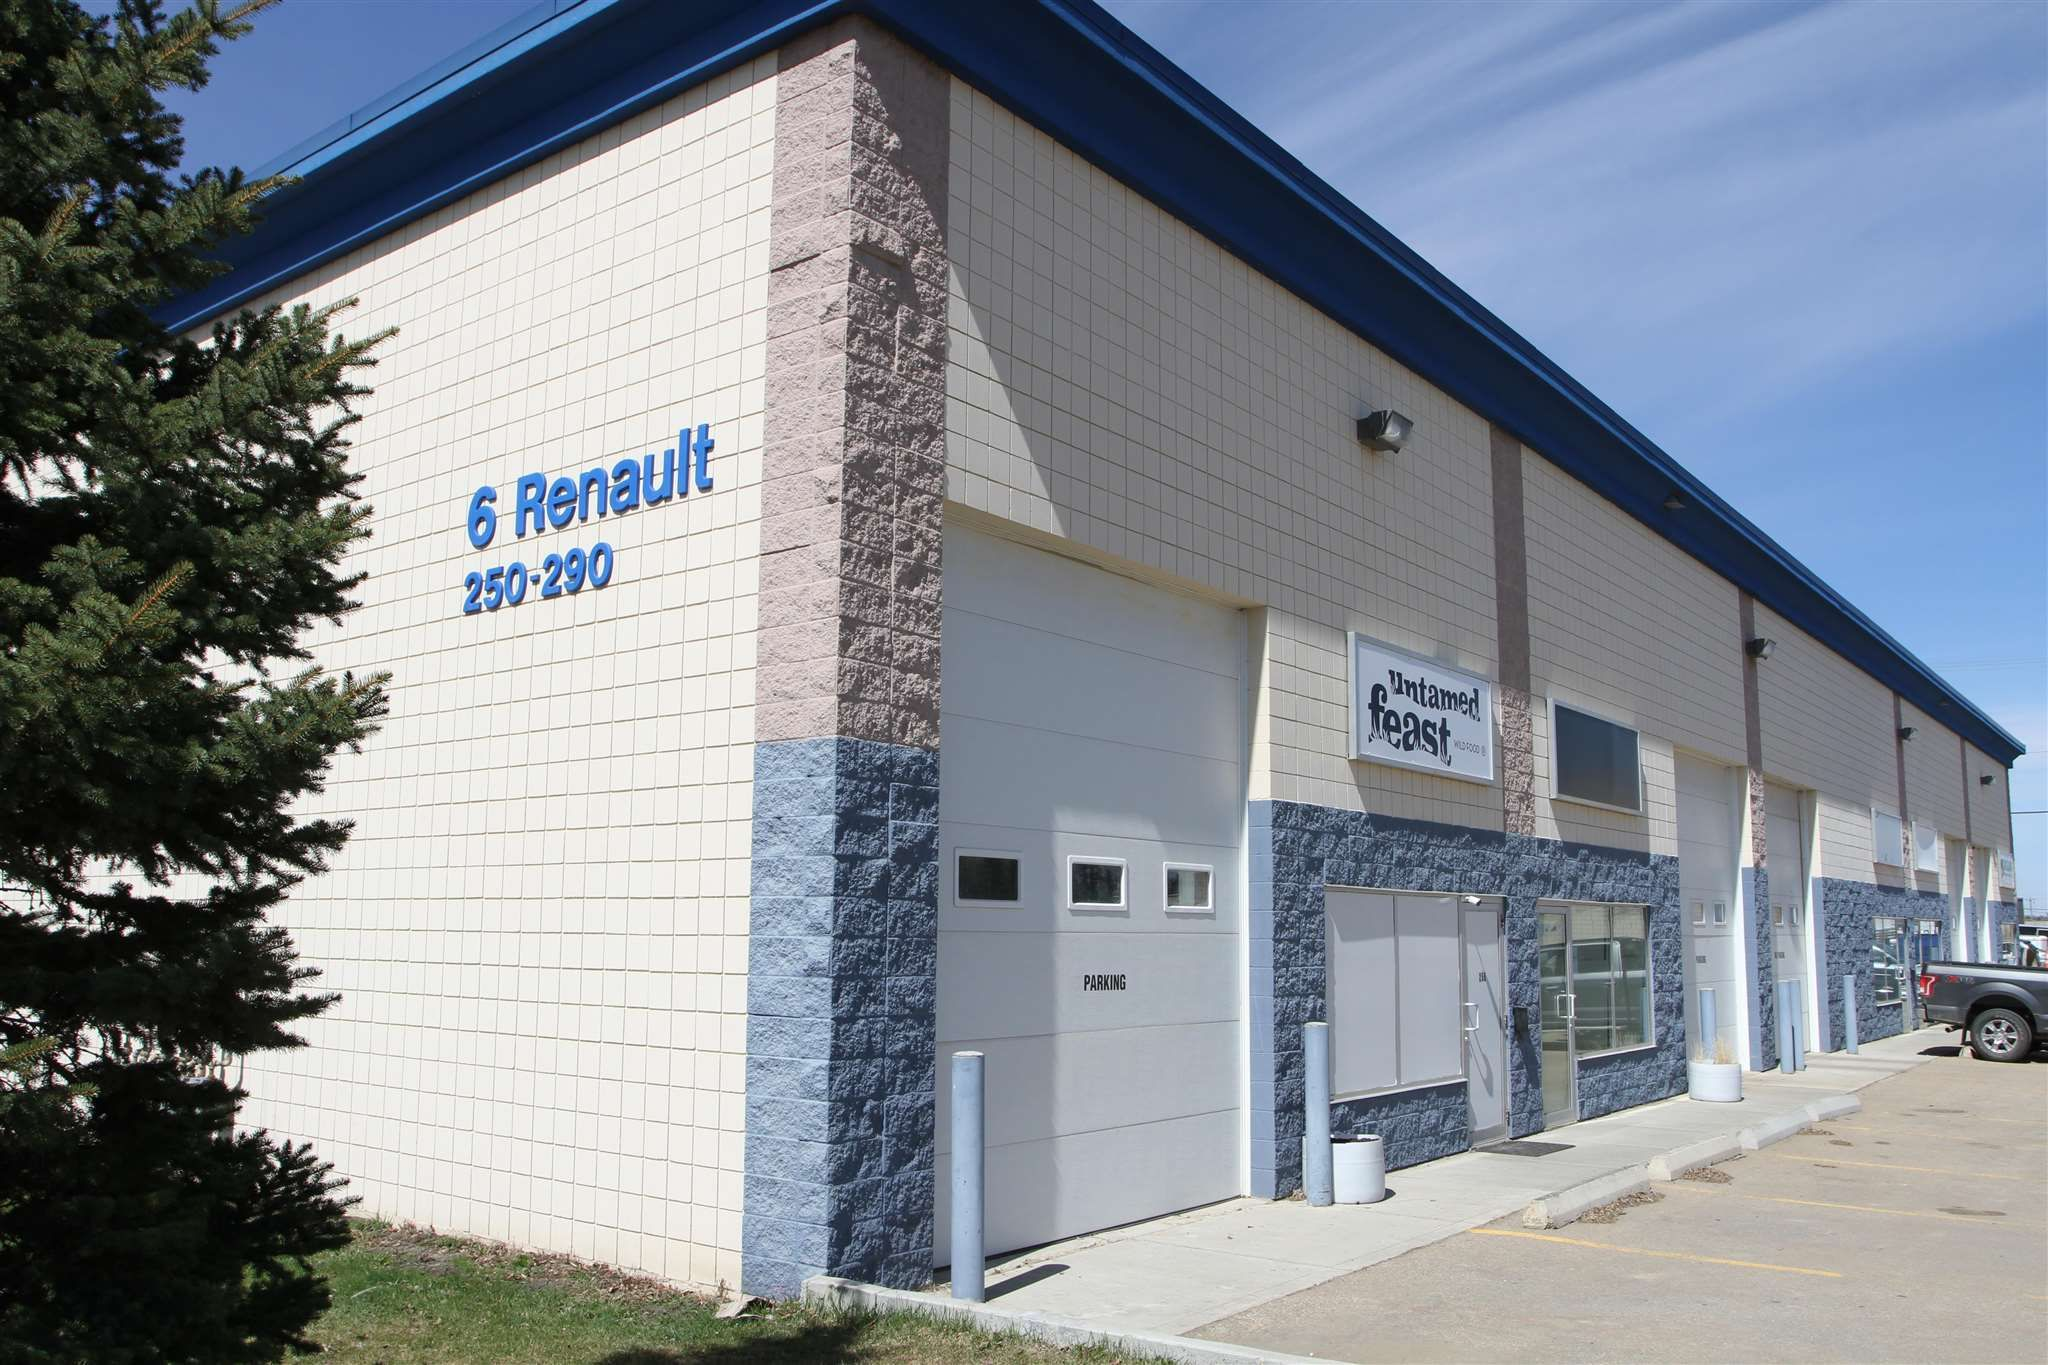 Main Photo: 260 6 Renault Crescent: St. Albert Industrial for lease : MLS®# E4245280